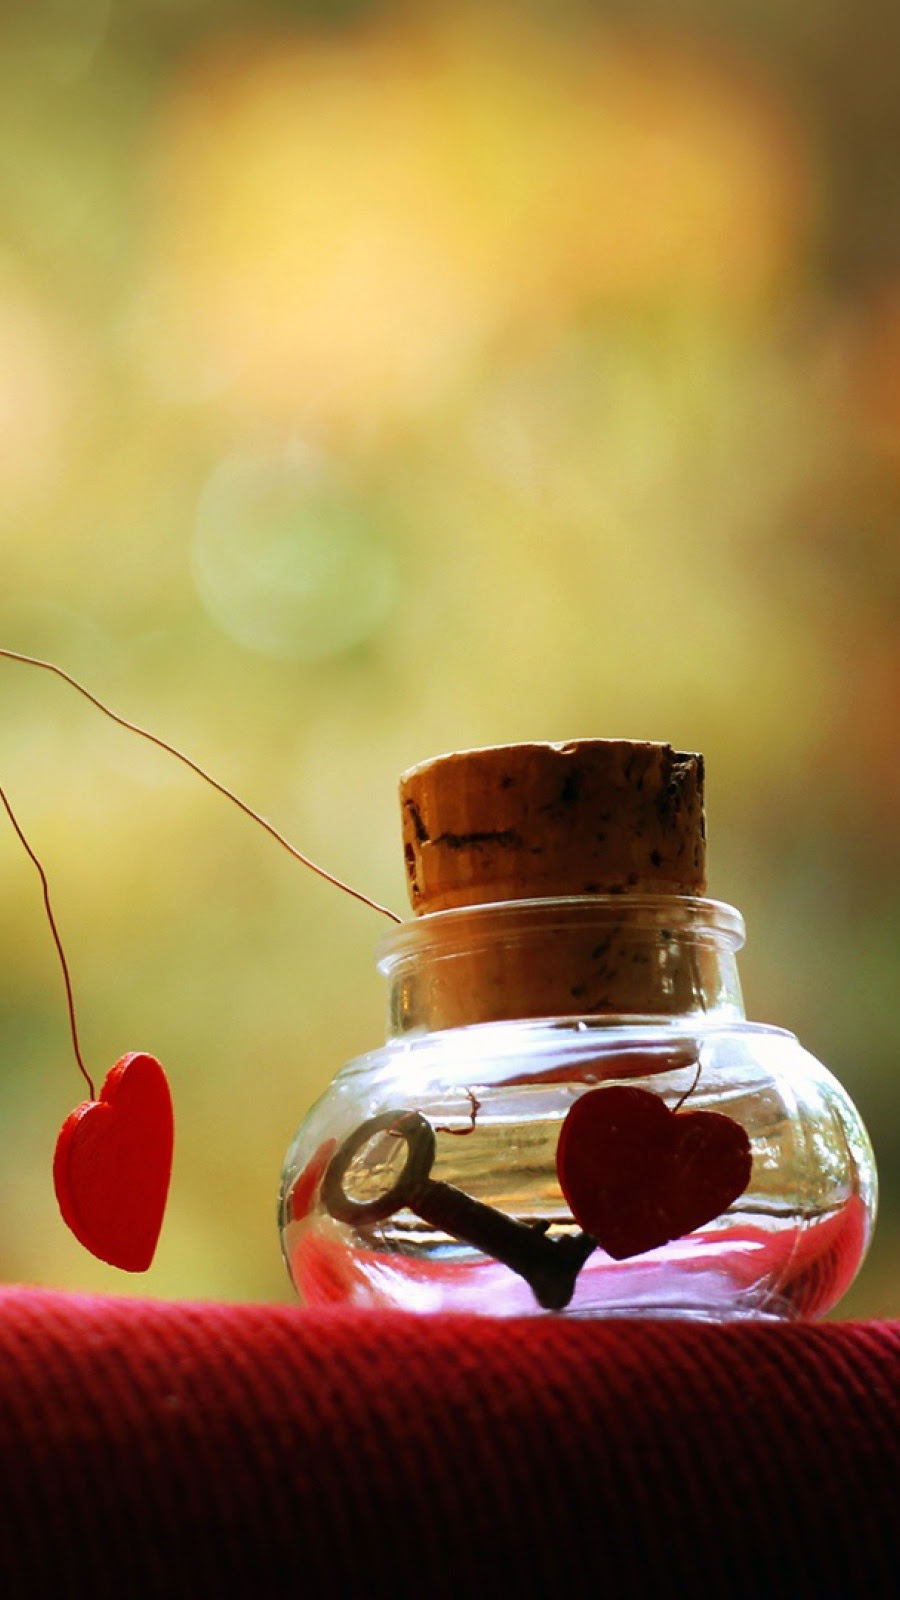 30 Valentines Day HD Mobile Wallpapers for Your Galaxy Phones